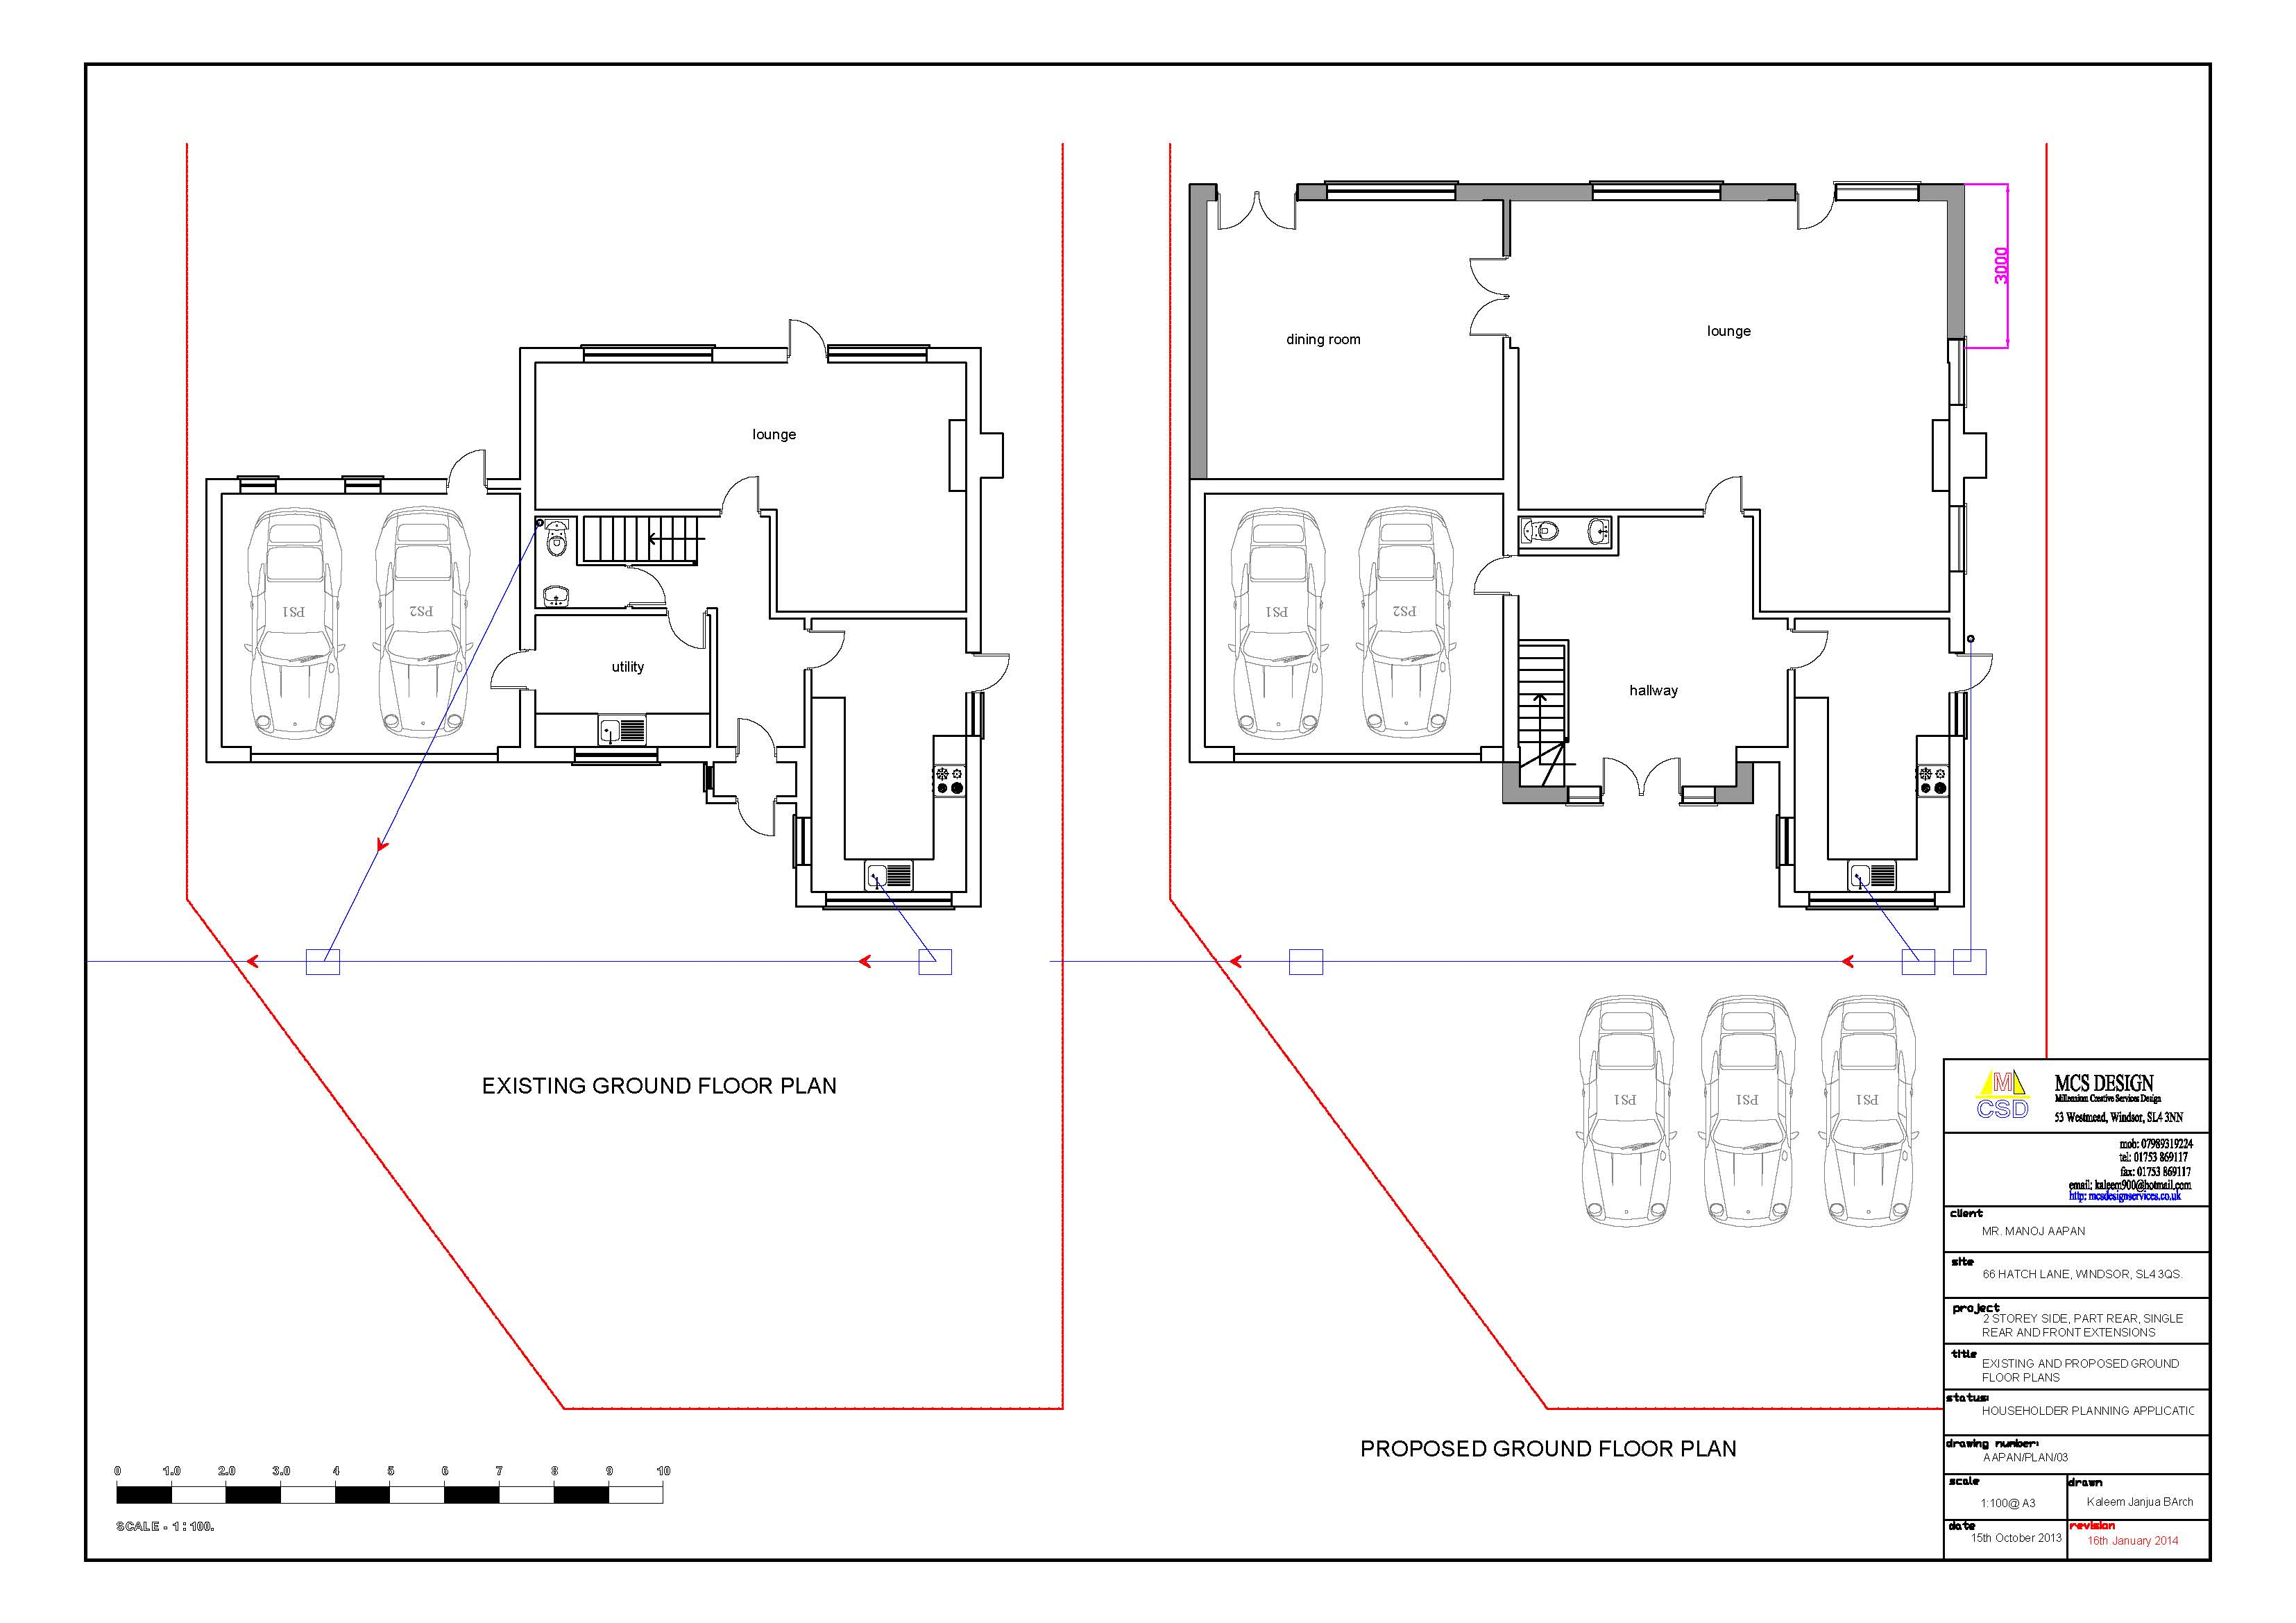 How to get floor plans of an existing home how to get for How to get floor plans of an existing building